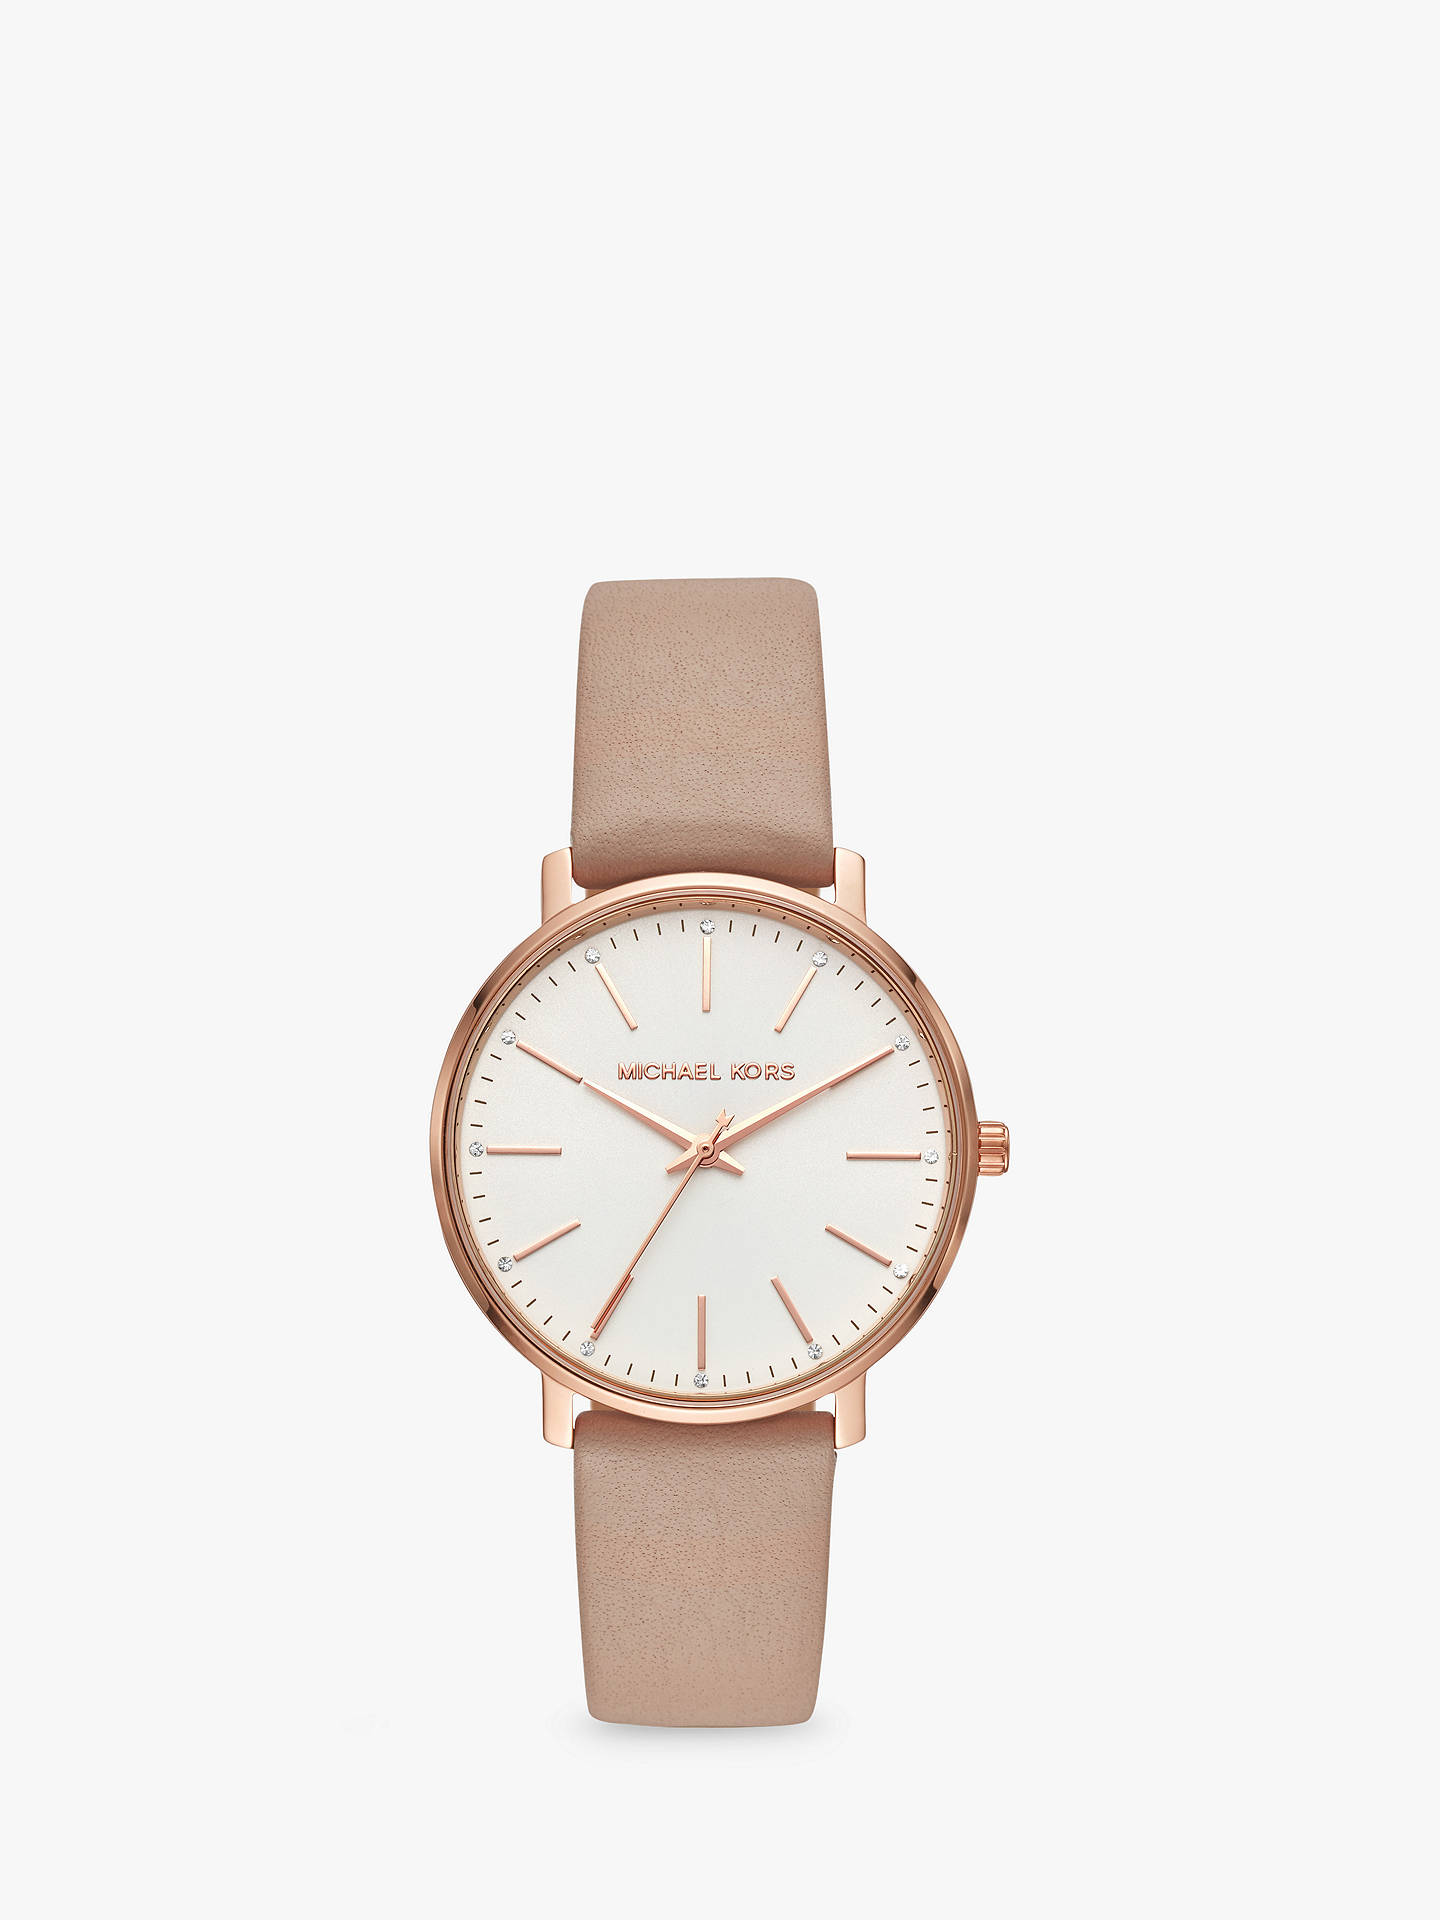 b3528a208 Buy Michael Kors Women's Pyper Leather Strap Watch, Beige/White MK2748  Online at johnlewis ...